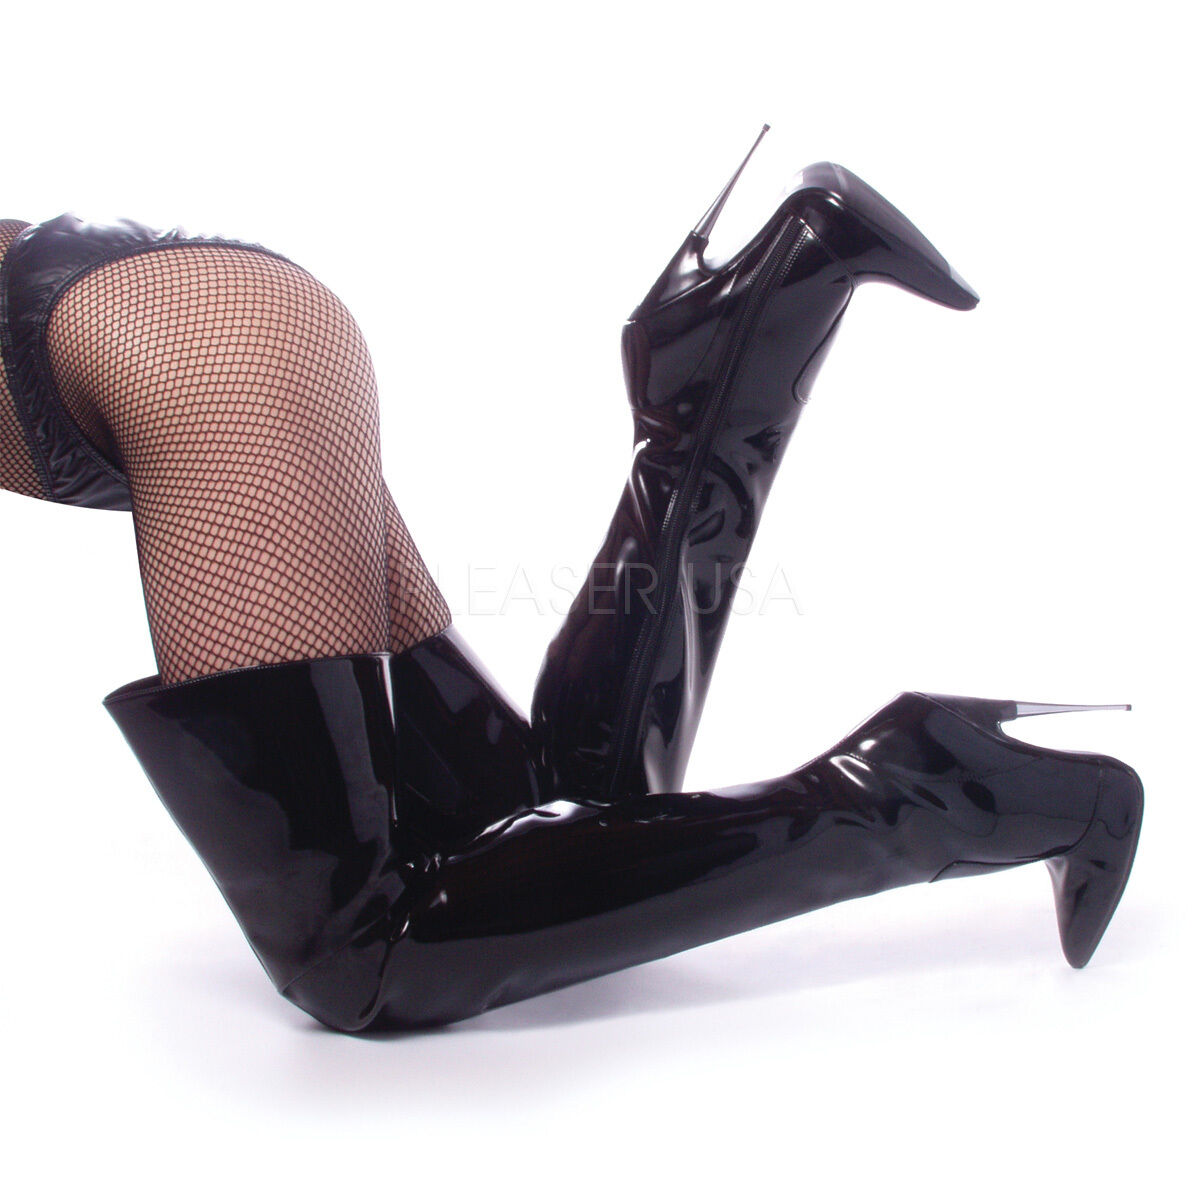 Exotic Sexy Extreme Metal 6  Spike Heel Black Thigh High Women's Boots SCR3010 B